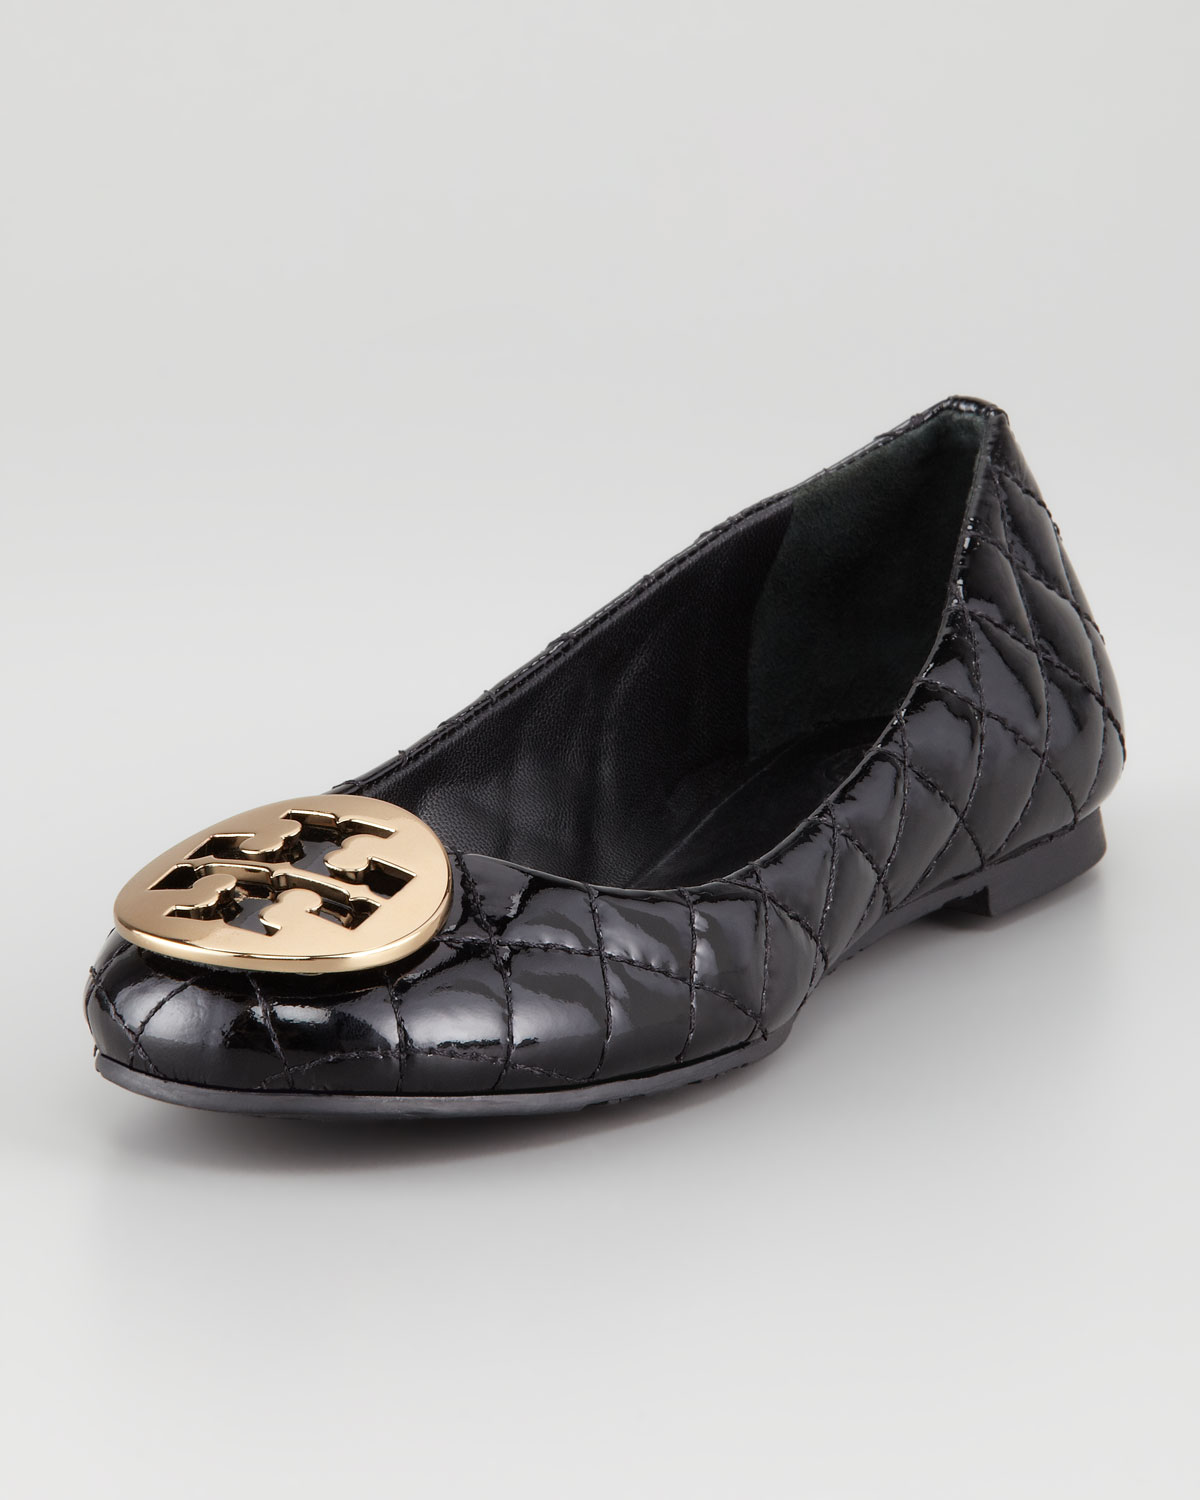 Tory Burch Quinn Quilted Patent Ballerina Flat In Black